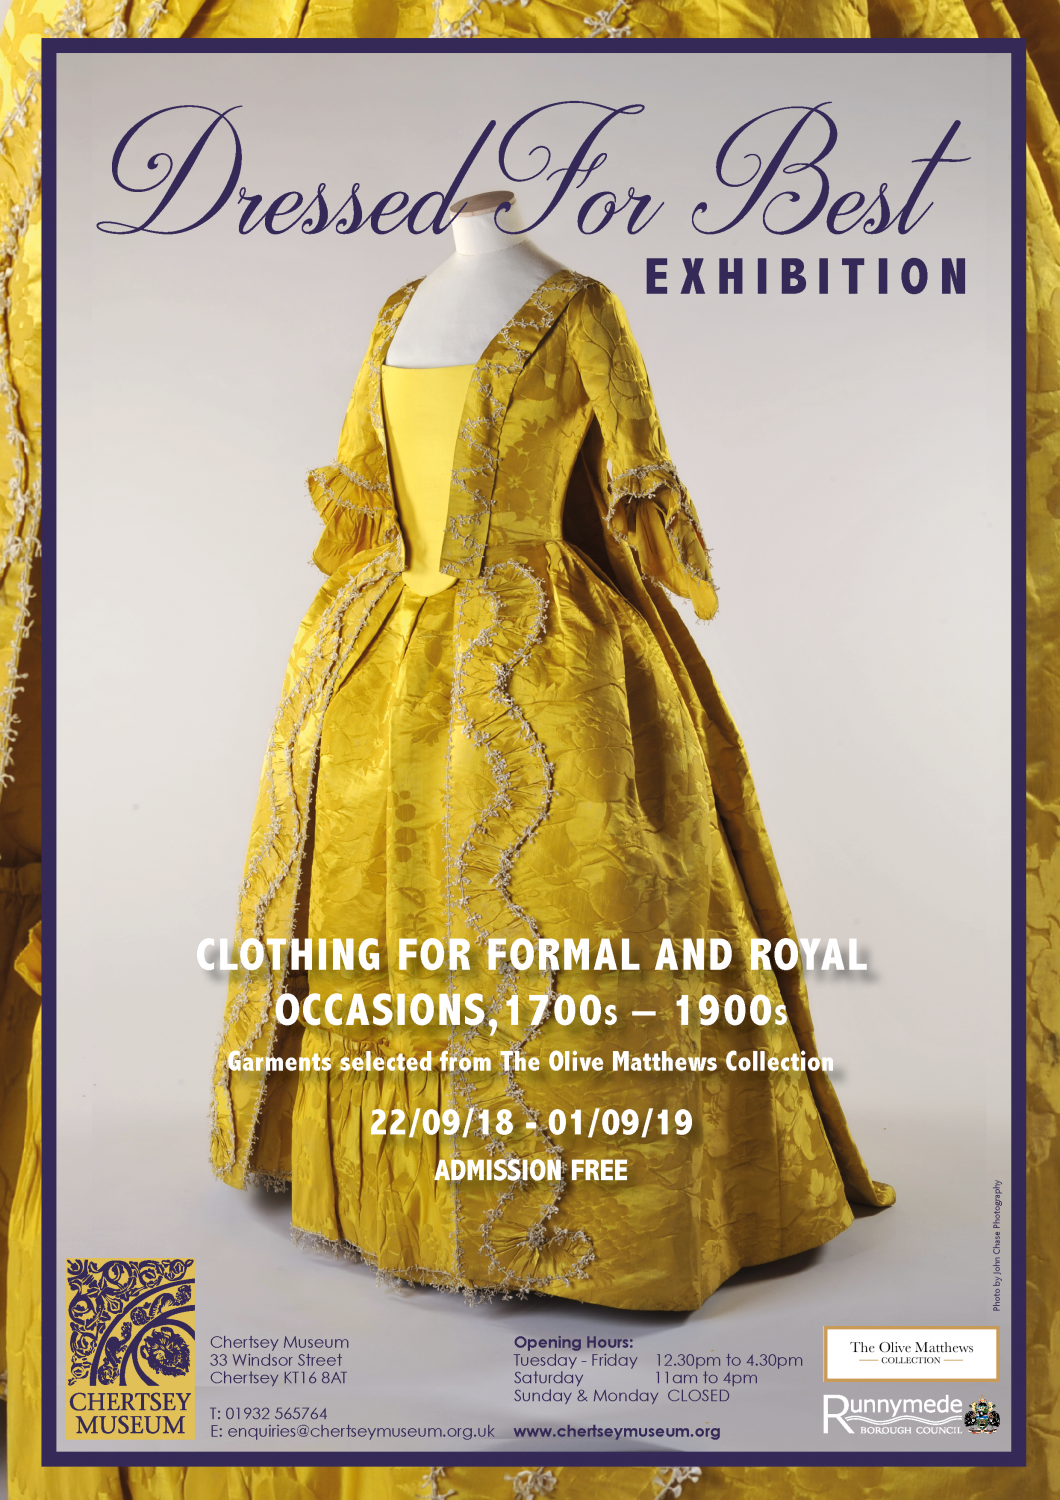 Dressed for Best Exhibition Poster